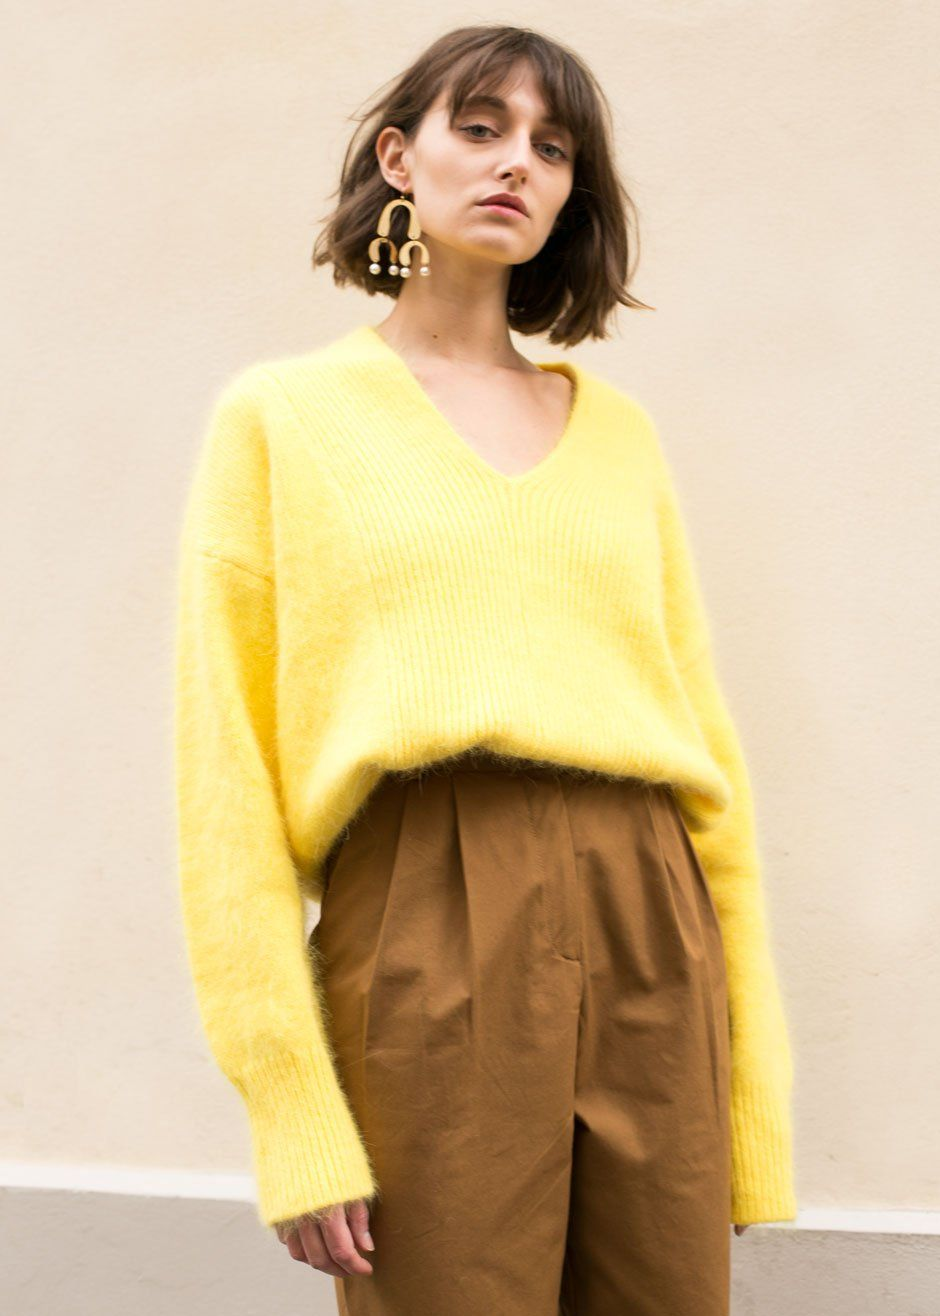 Canary Yellow V-Neck Angora Sweater | Angora sweater and Shopping